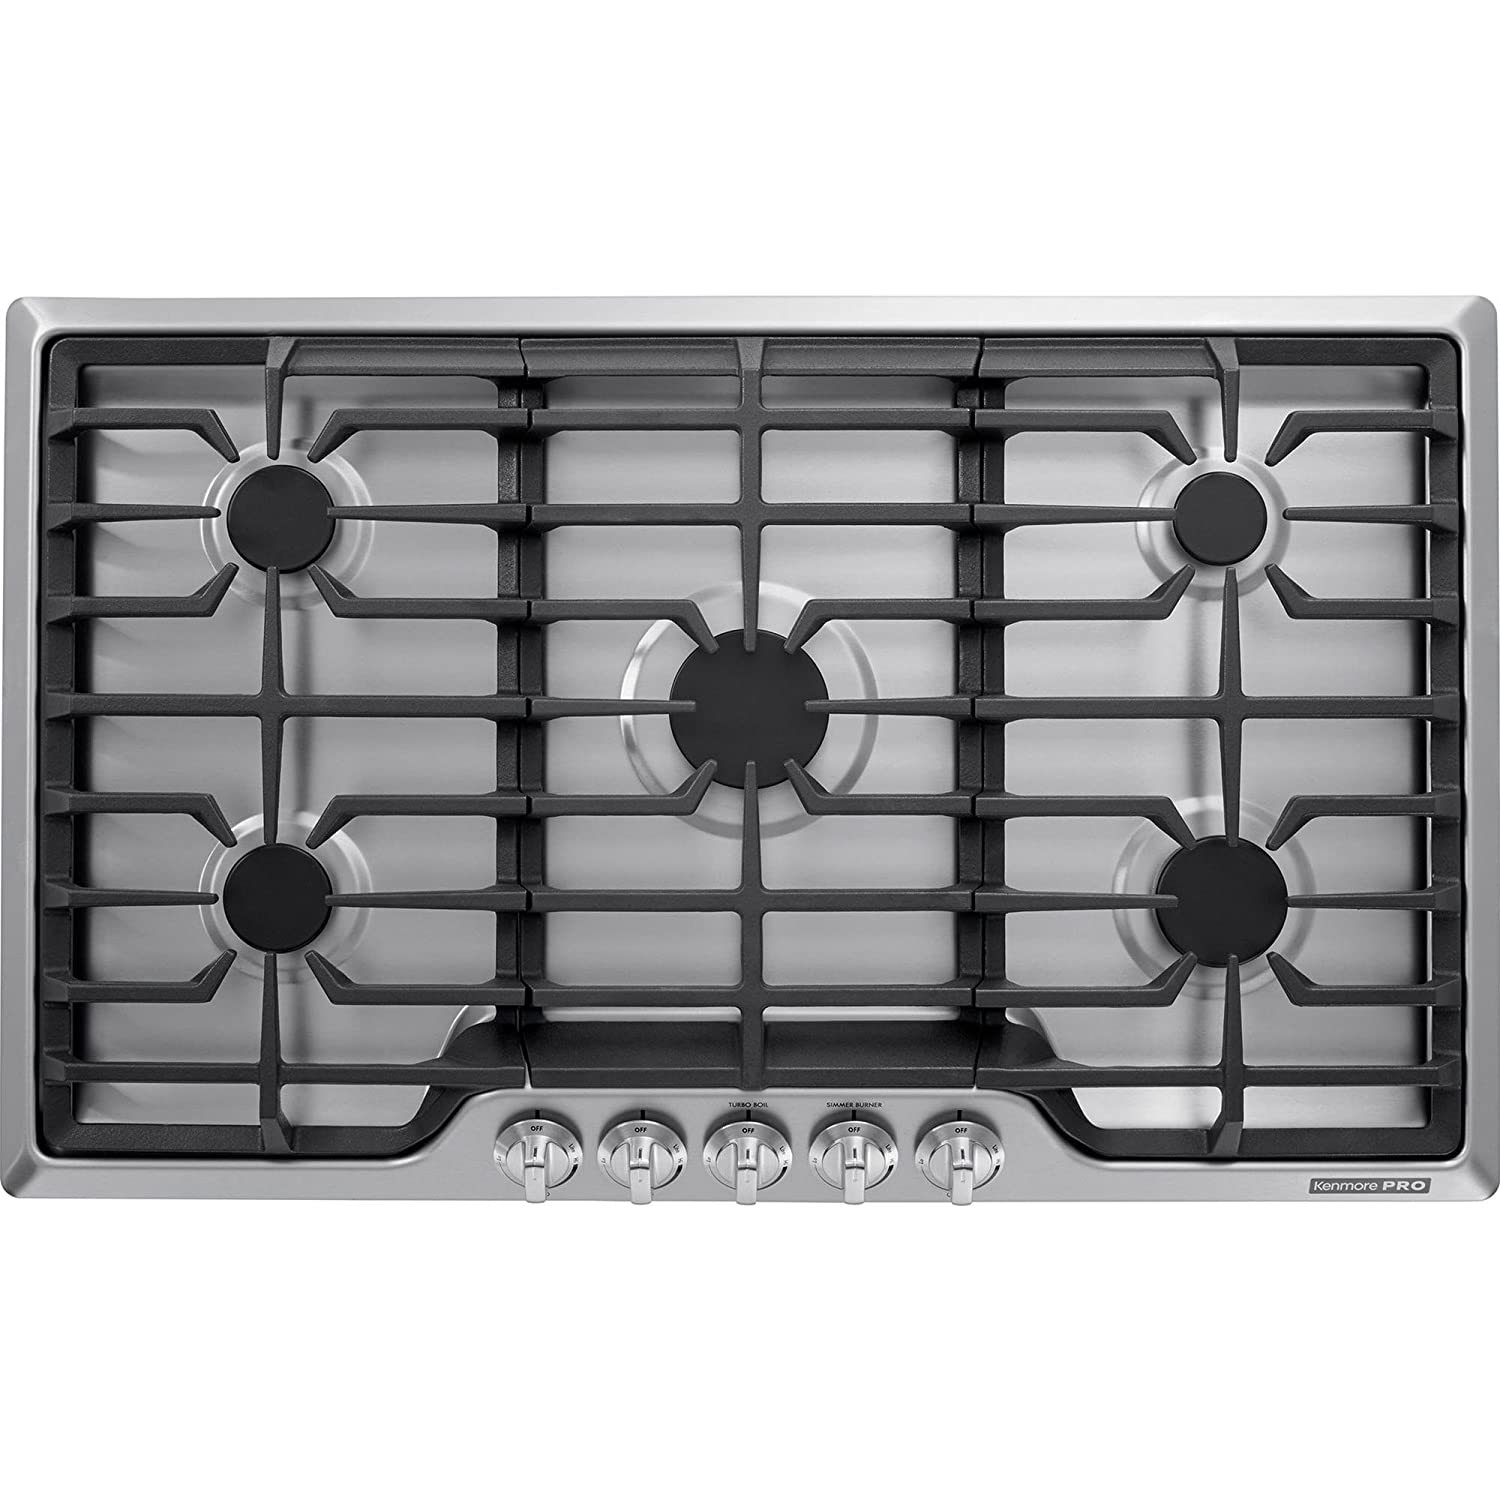 Kenmore PRO 34423 36\' 5 Burner Gas Cooktop in Stainless Steel, includes delivery and hookup Sears Brands Management Corporation (Kenmore) 02234423